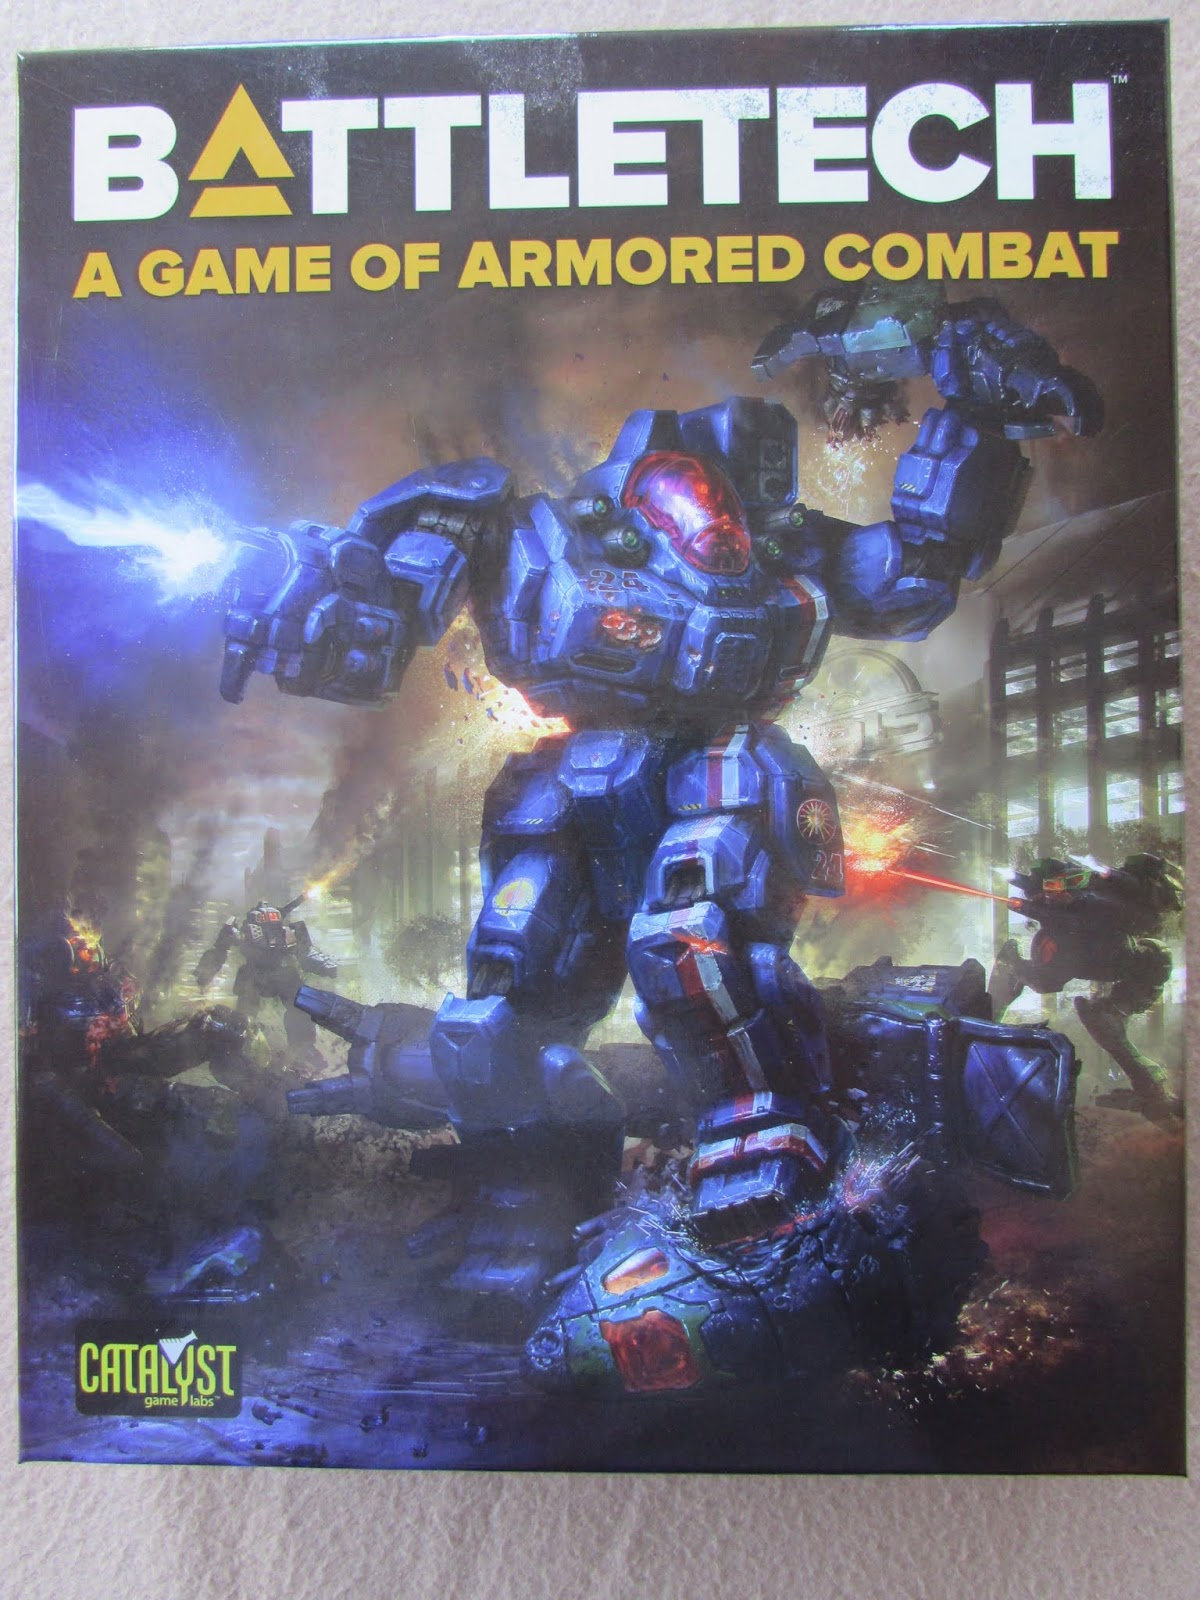 a game of armored combat